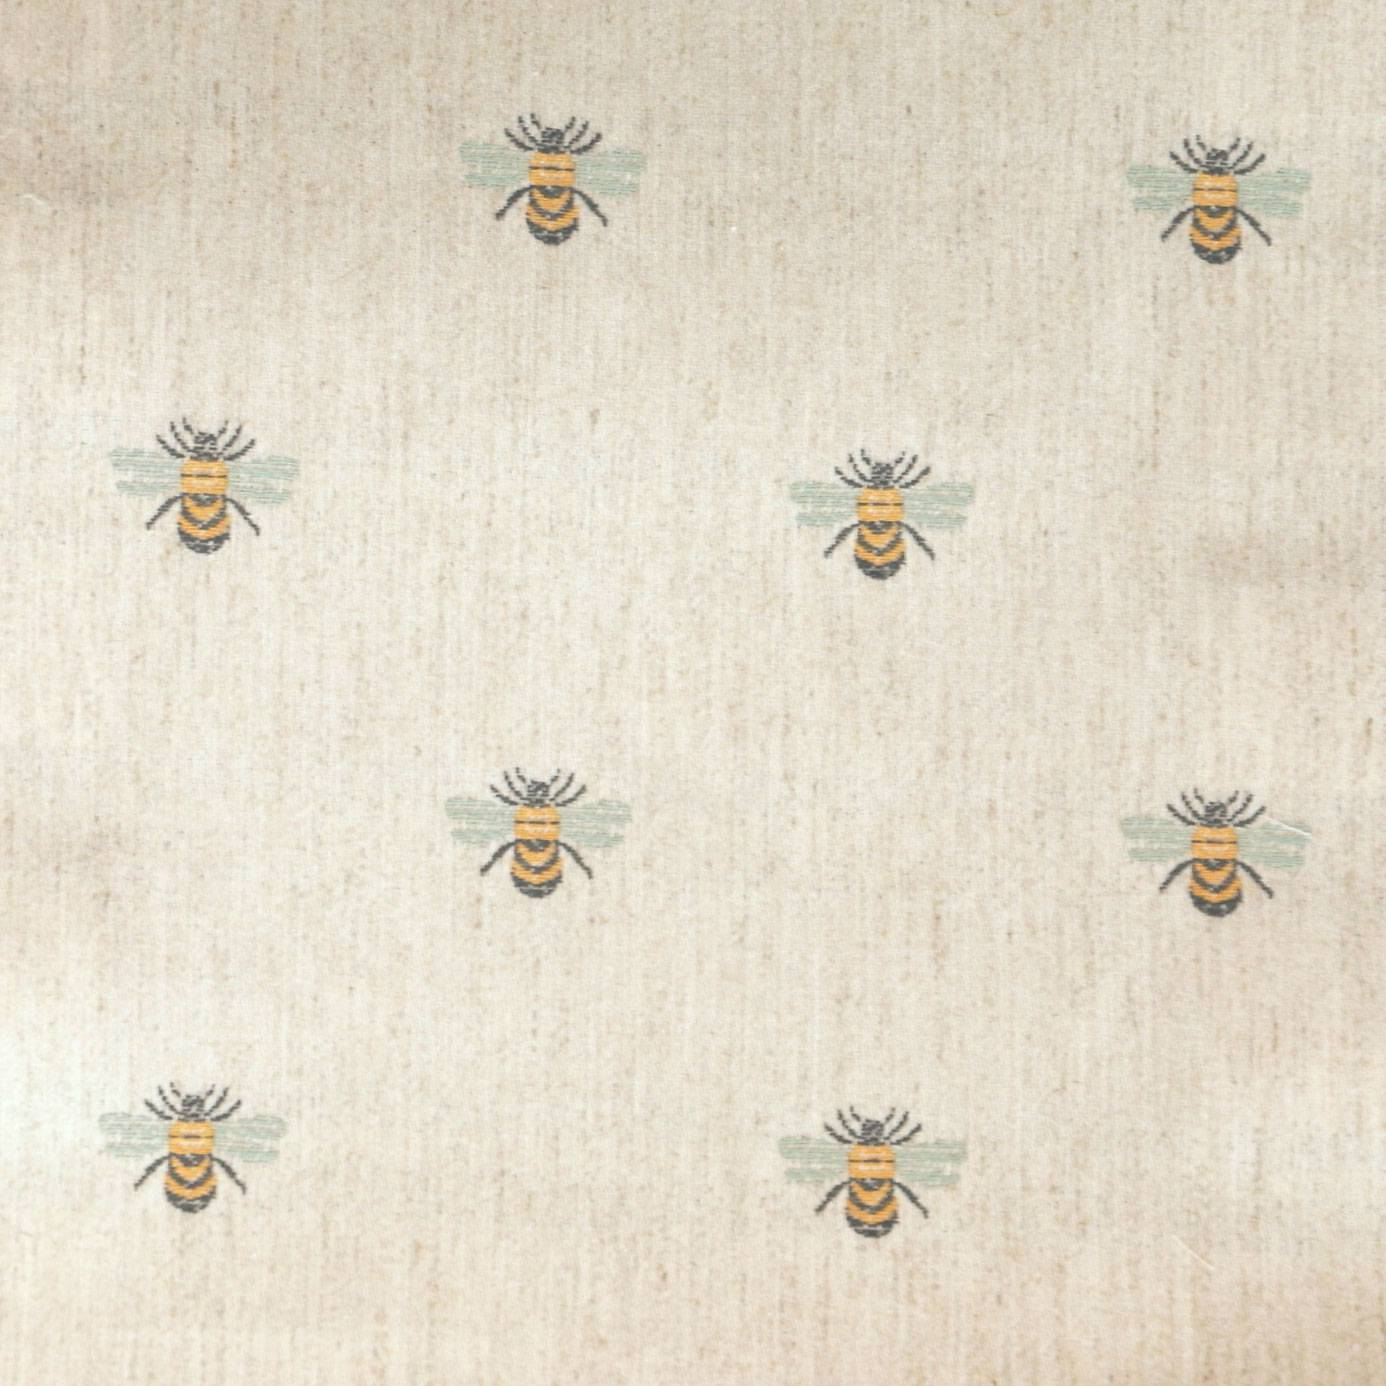 Curtains in bee fabric gold s1007 chess animal charm fabrics collection